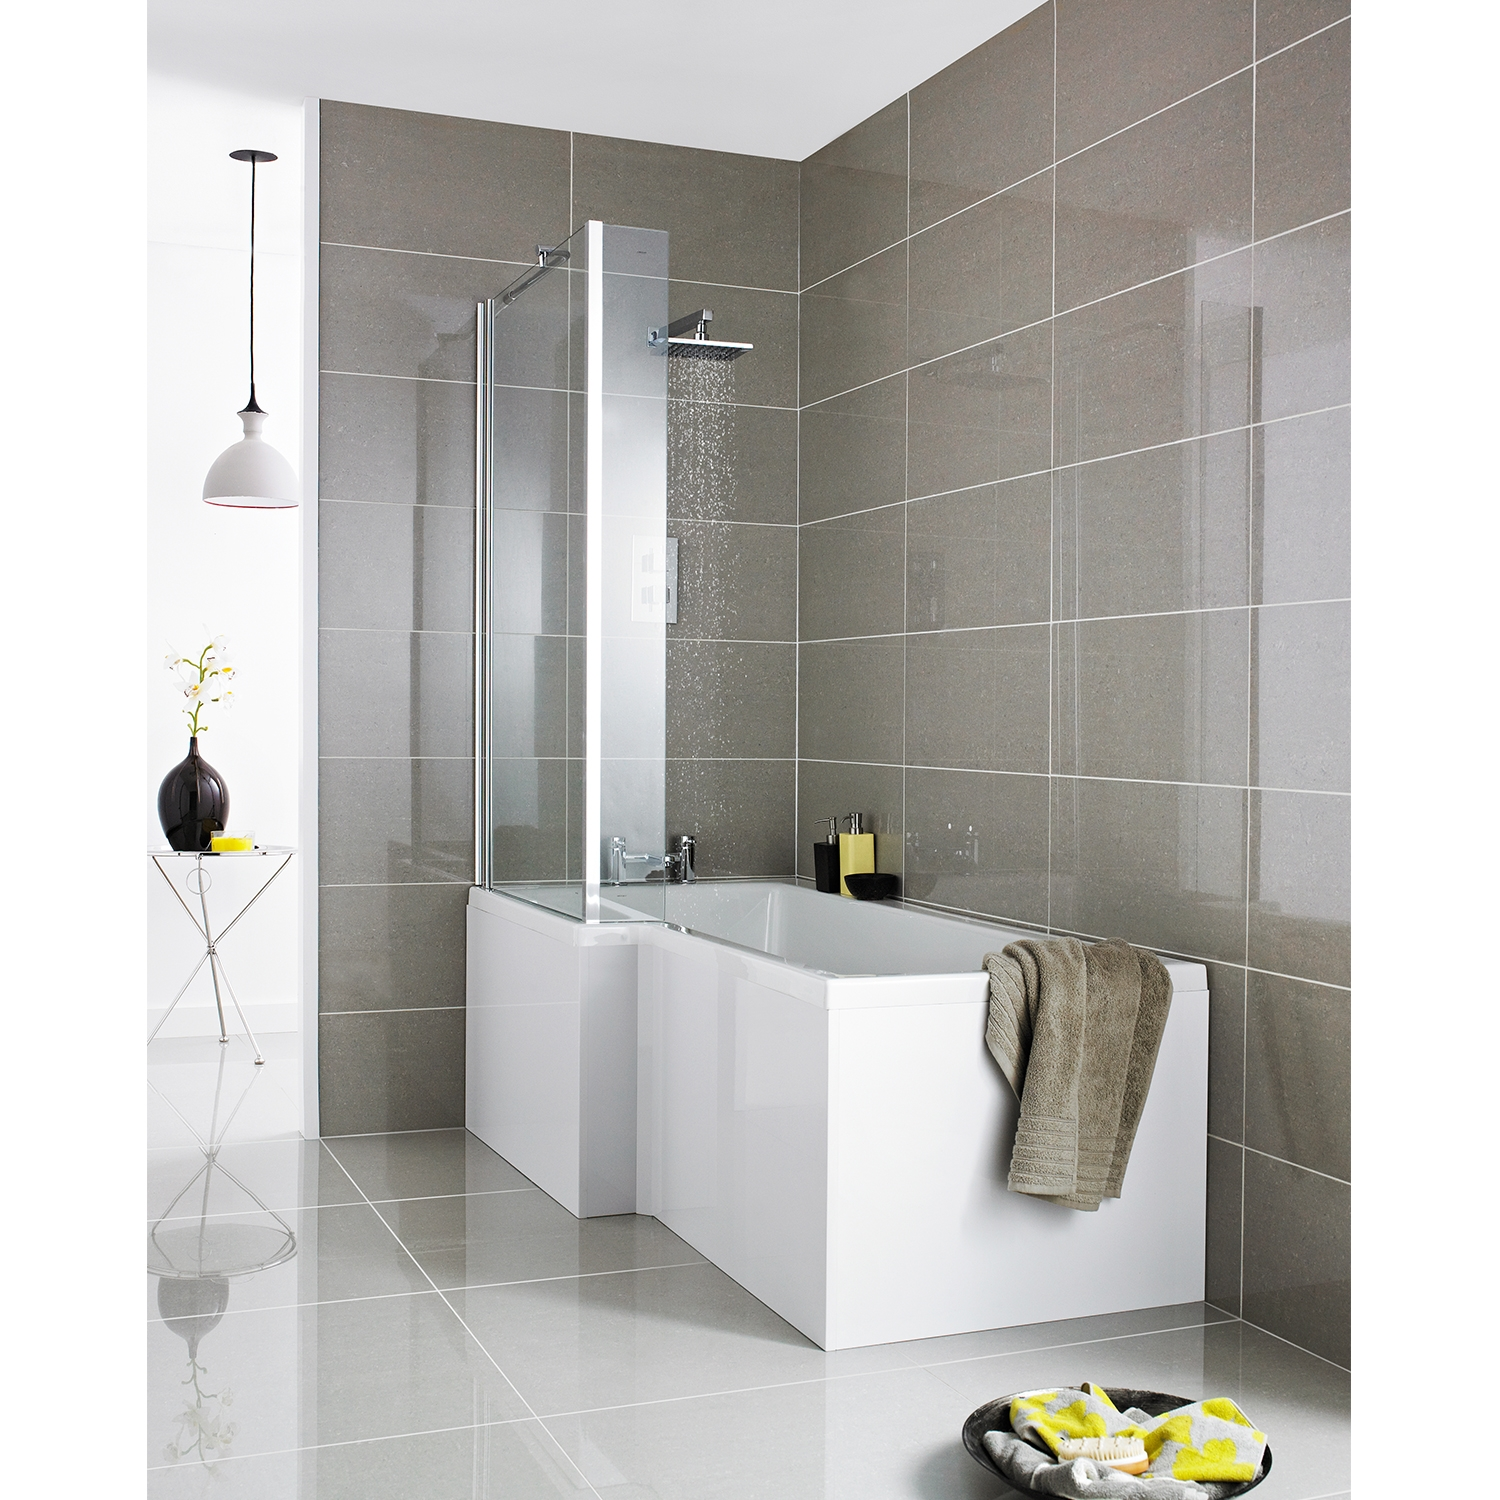 Premier Square L-Shaped Shower Bath 1500mm x 700mm/850mm Left Handed-0